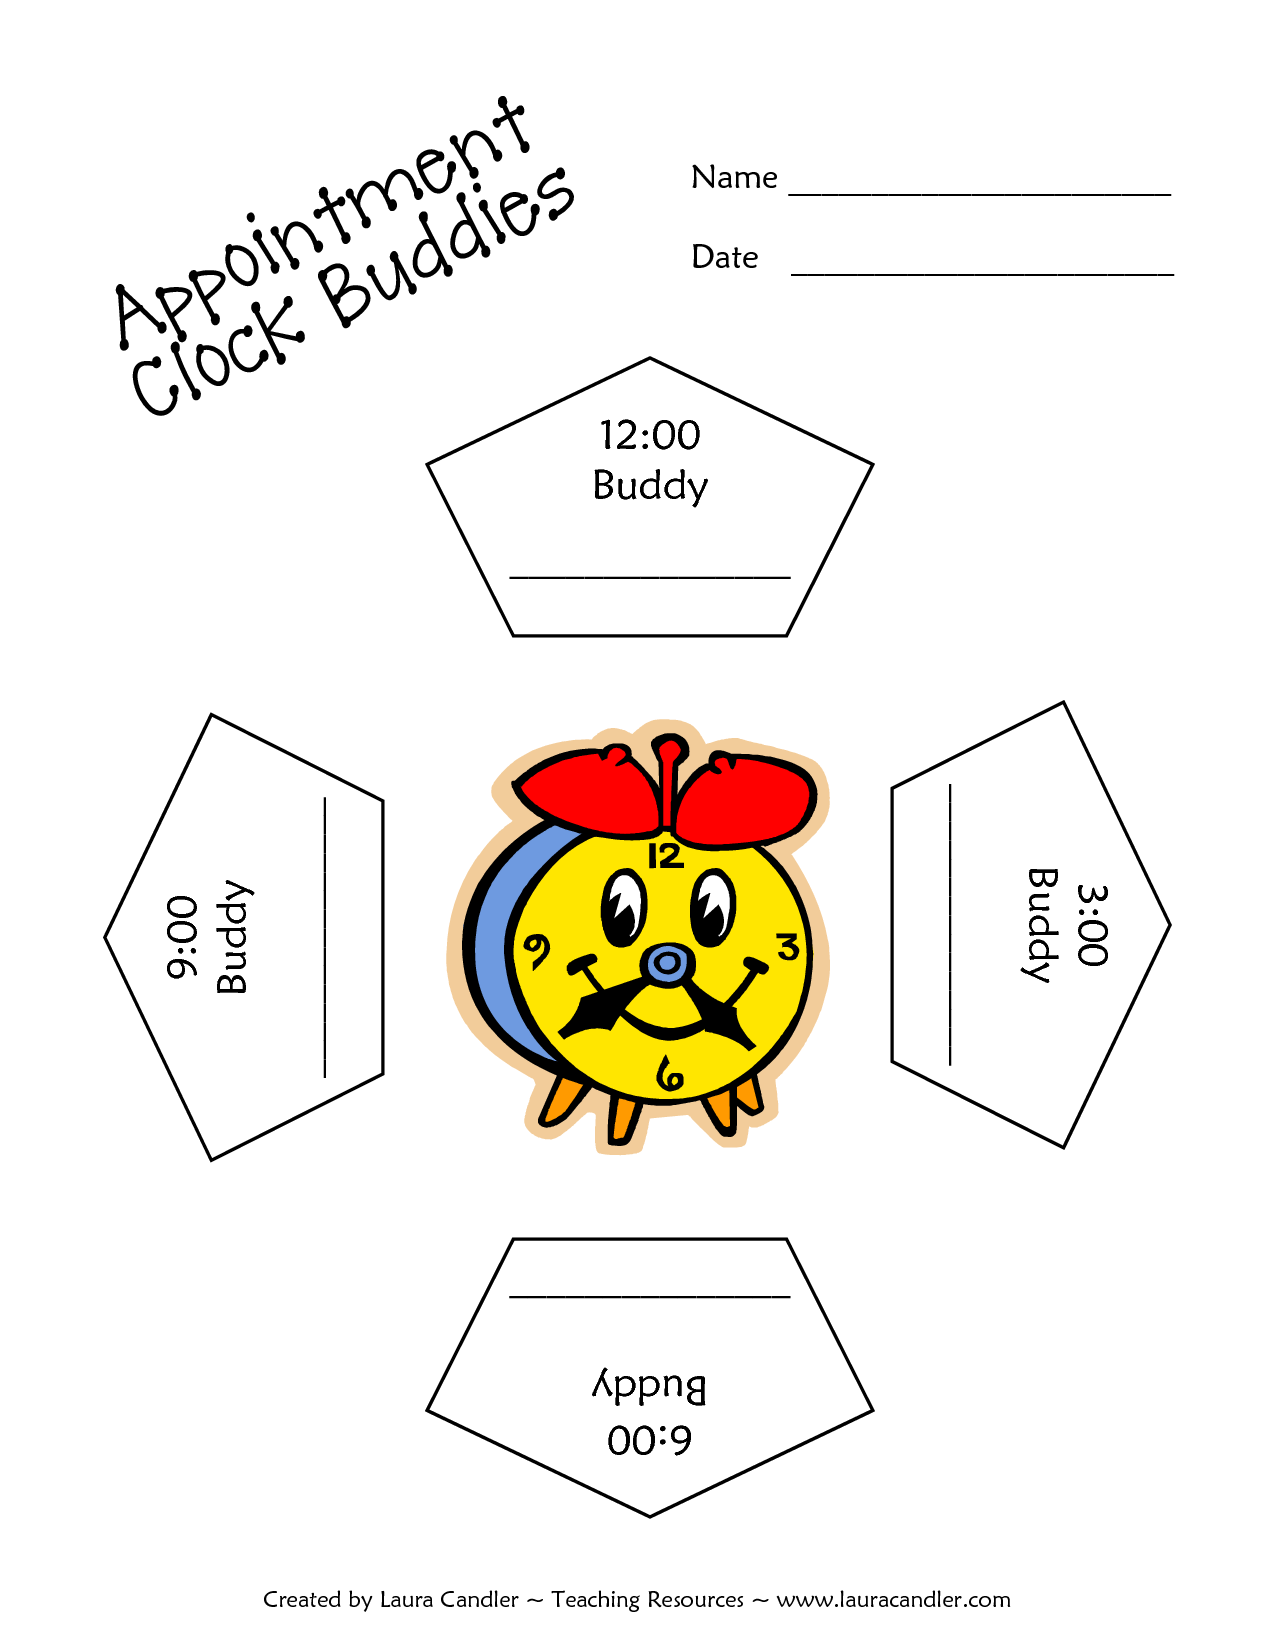 Clock Bud S Graphic Organizer Graphic Organizer Appointment Clock Clock Bud S